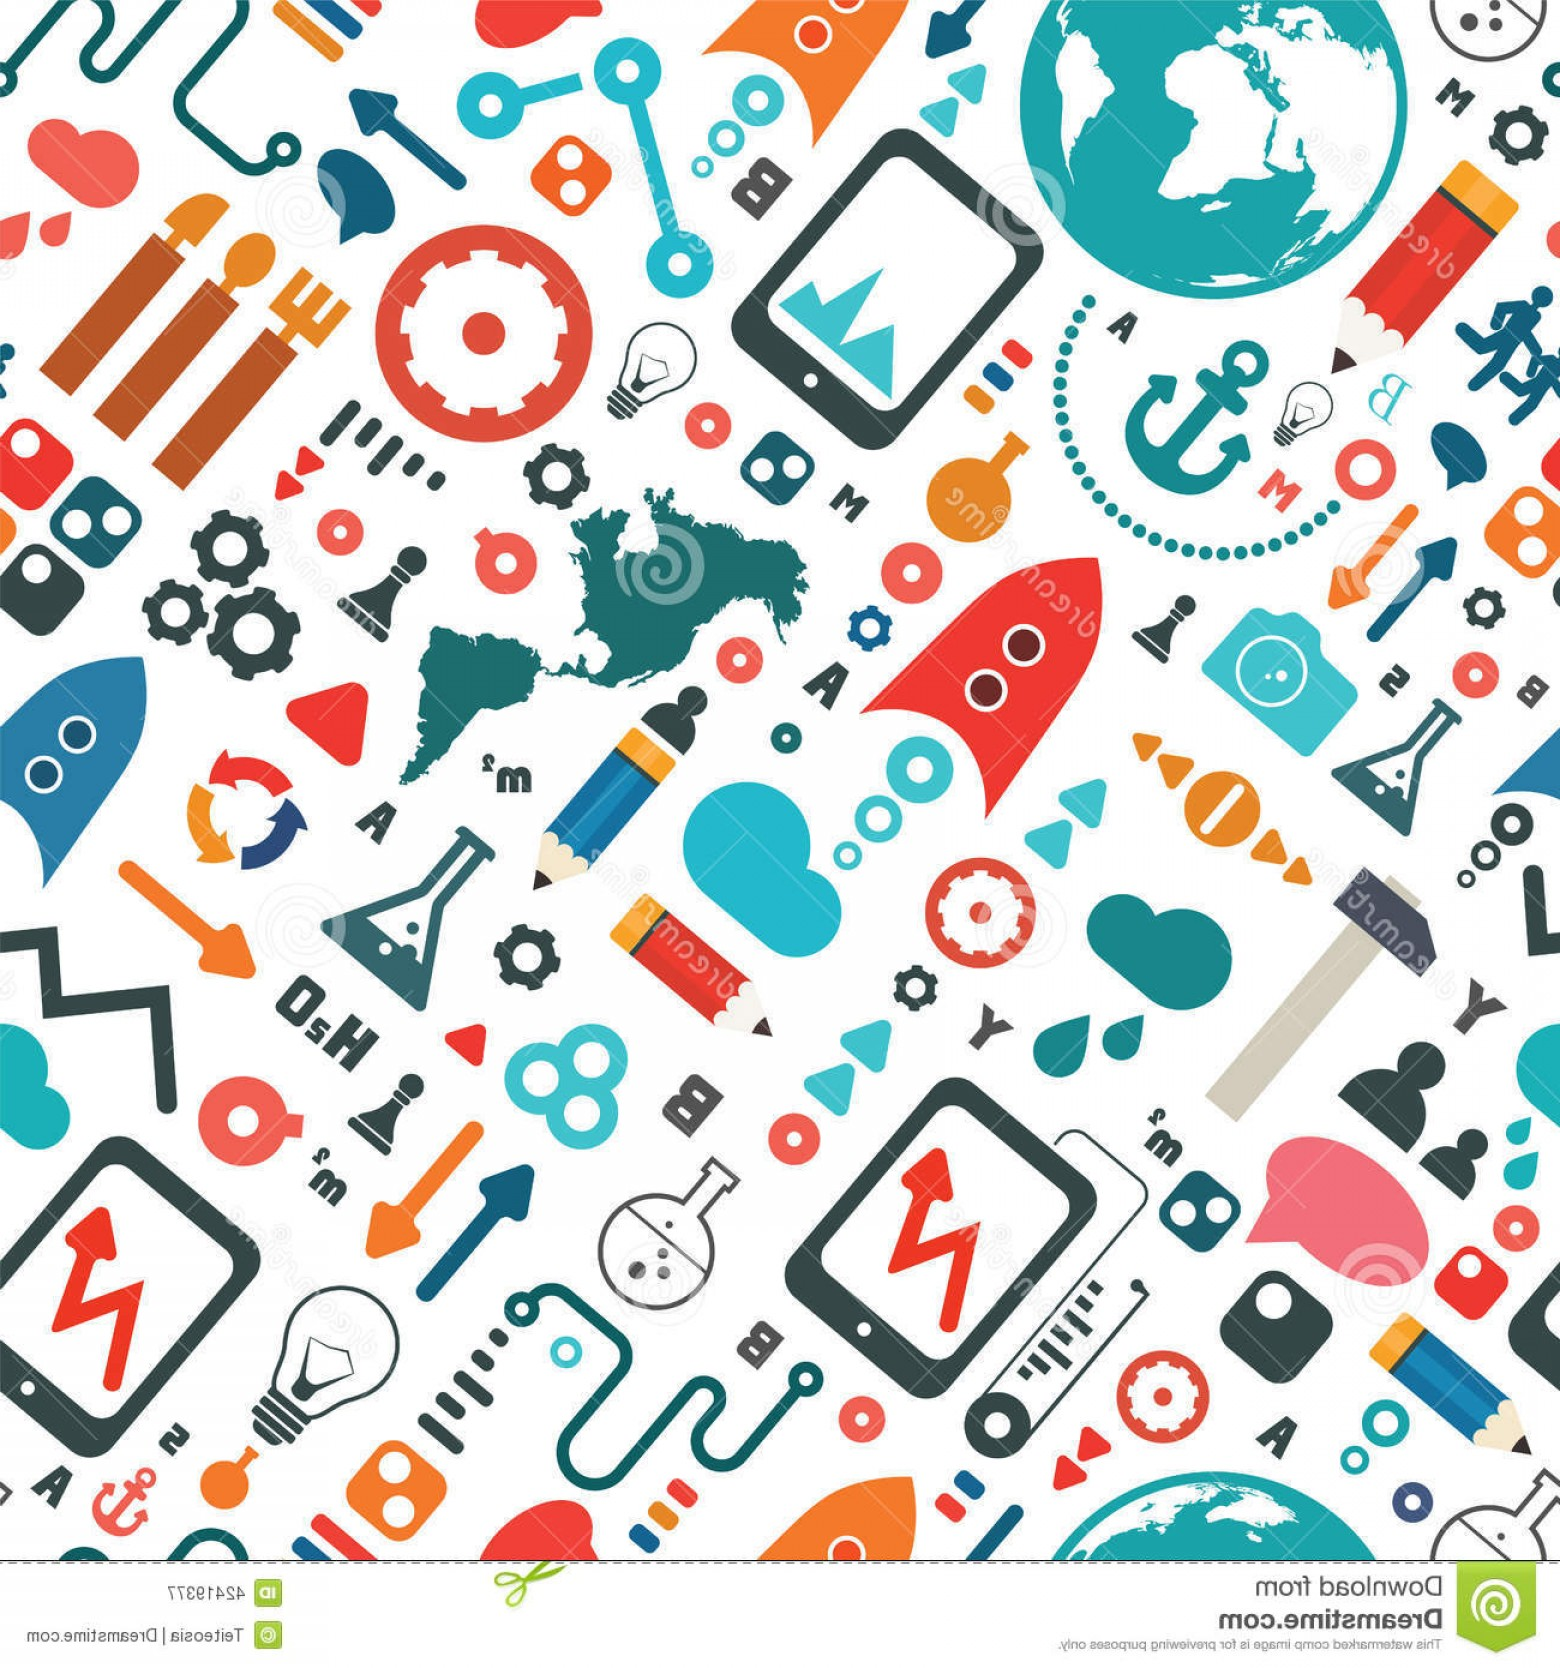 Pencil Icon Vectors Social Media: Stock Illustration Science Social Media Icon Seamless Pattern Vector Illustration Image